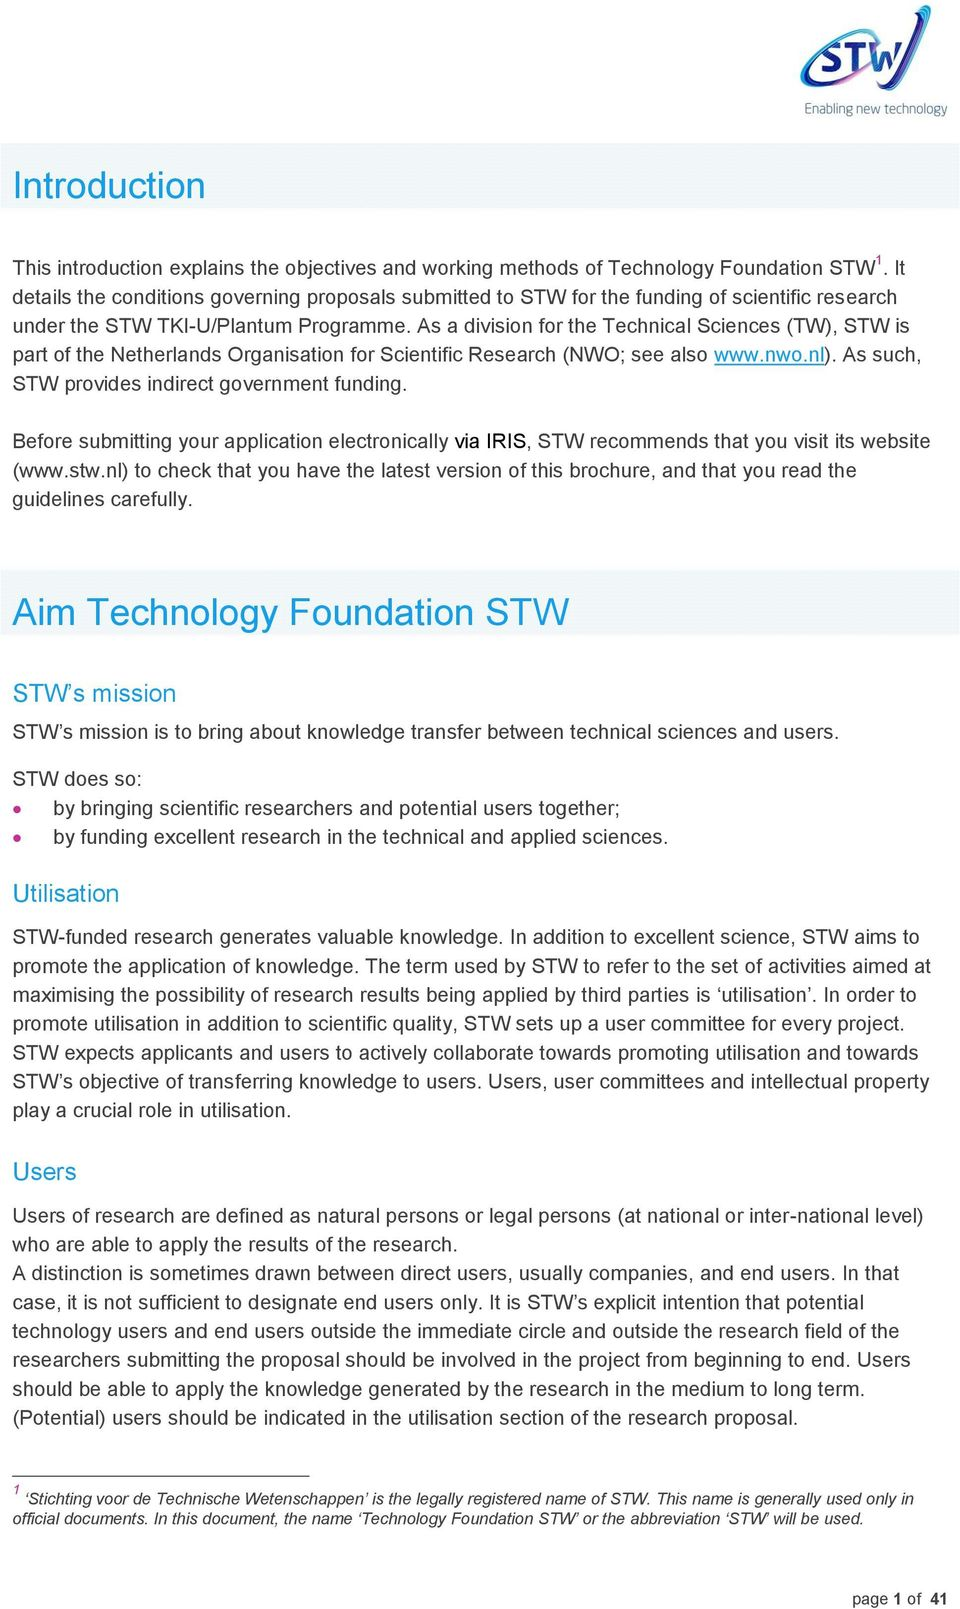 As a division for the Technical Sciences (TW), STW is part of the Netherlands Organisation for Scientific Research (NWO; see also www.nwo.nl). As such, STW provides indirect government funding.